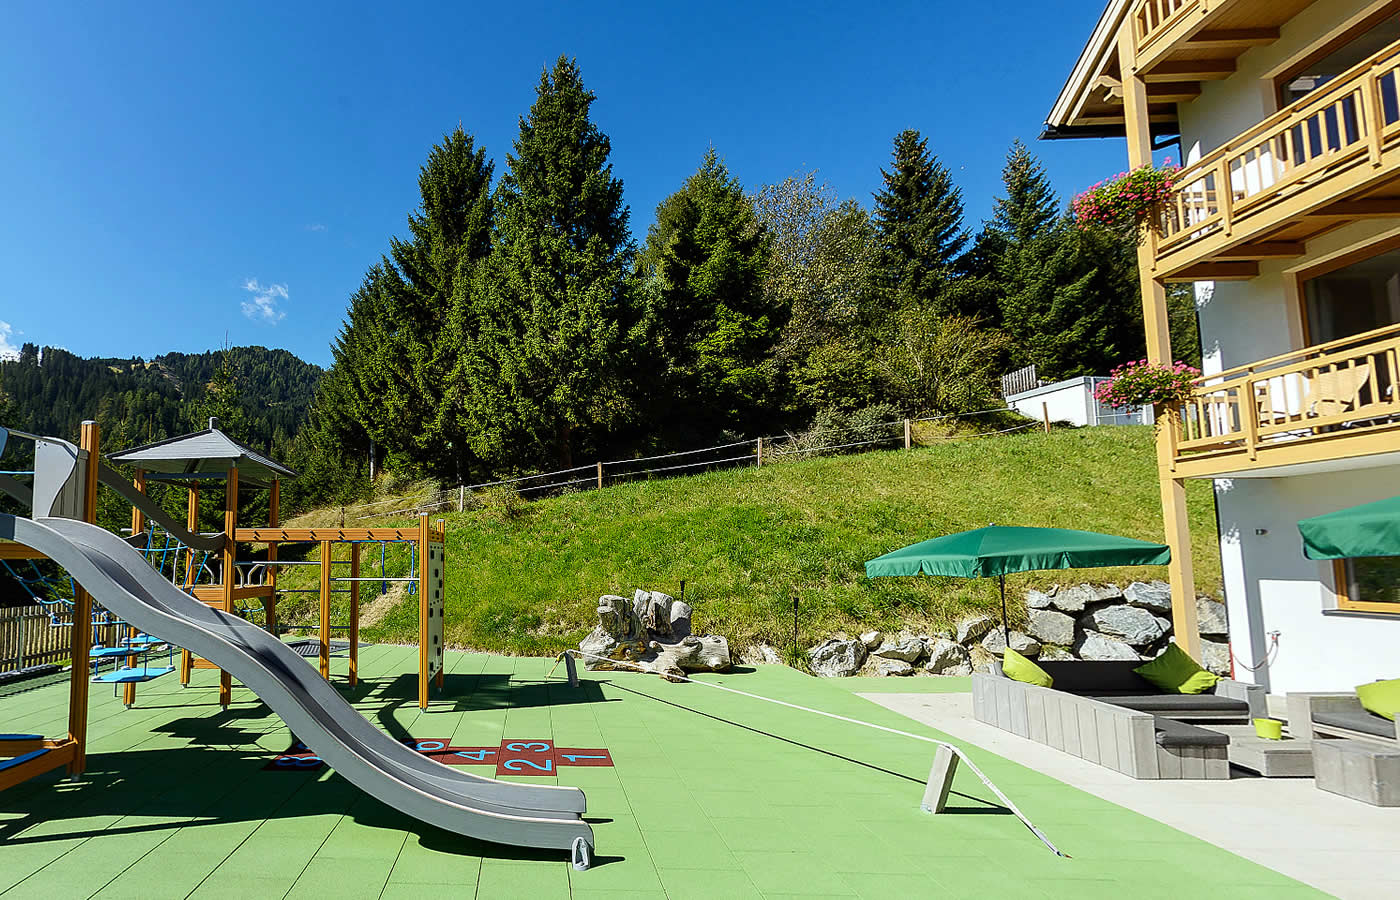 Terrasse mit Spielplatz und Sommer-Panorama-Weitblick. Natürlich Fiss.